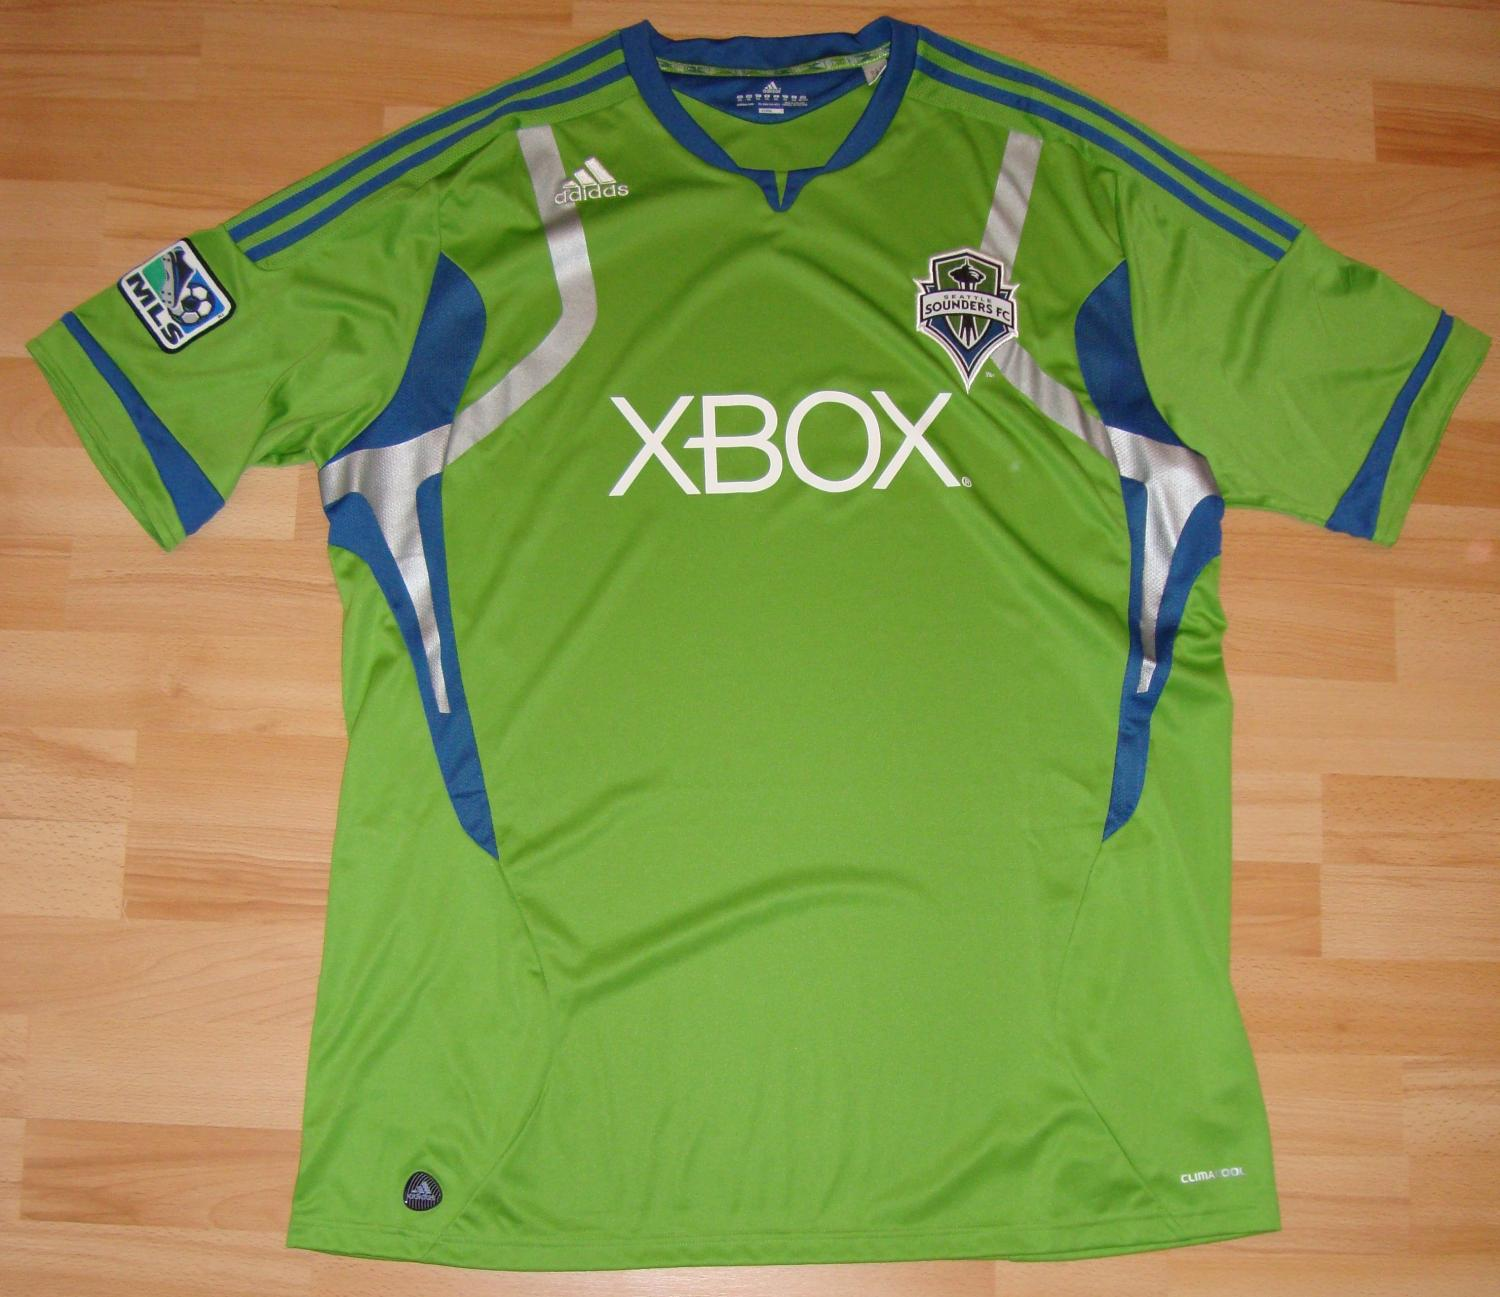 new arrival 641d7 fd4f8 Seattle Sounders Home חולצת כדורגל 2011. Sponsored by XBox